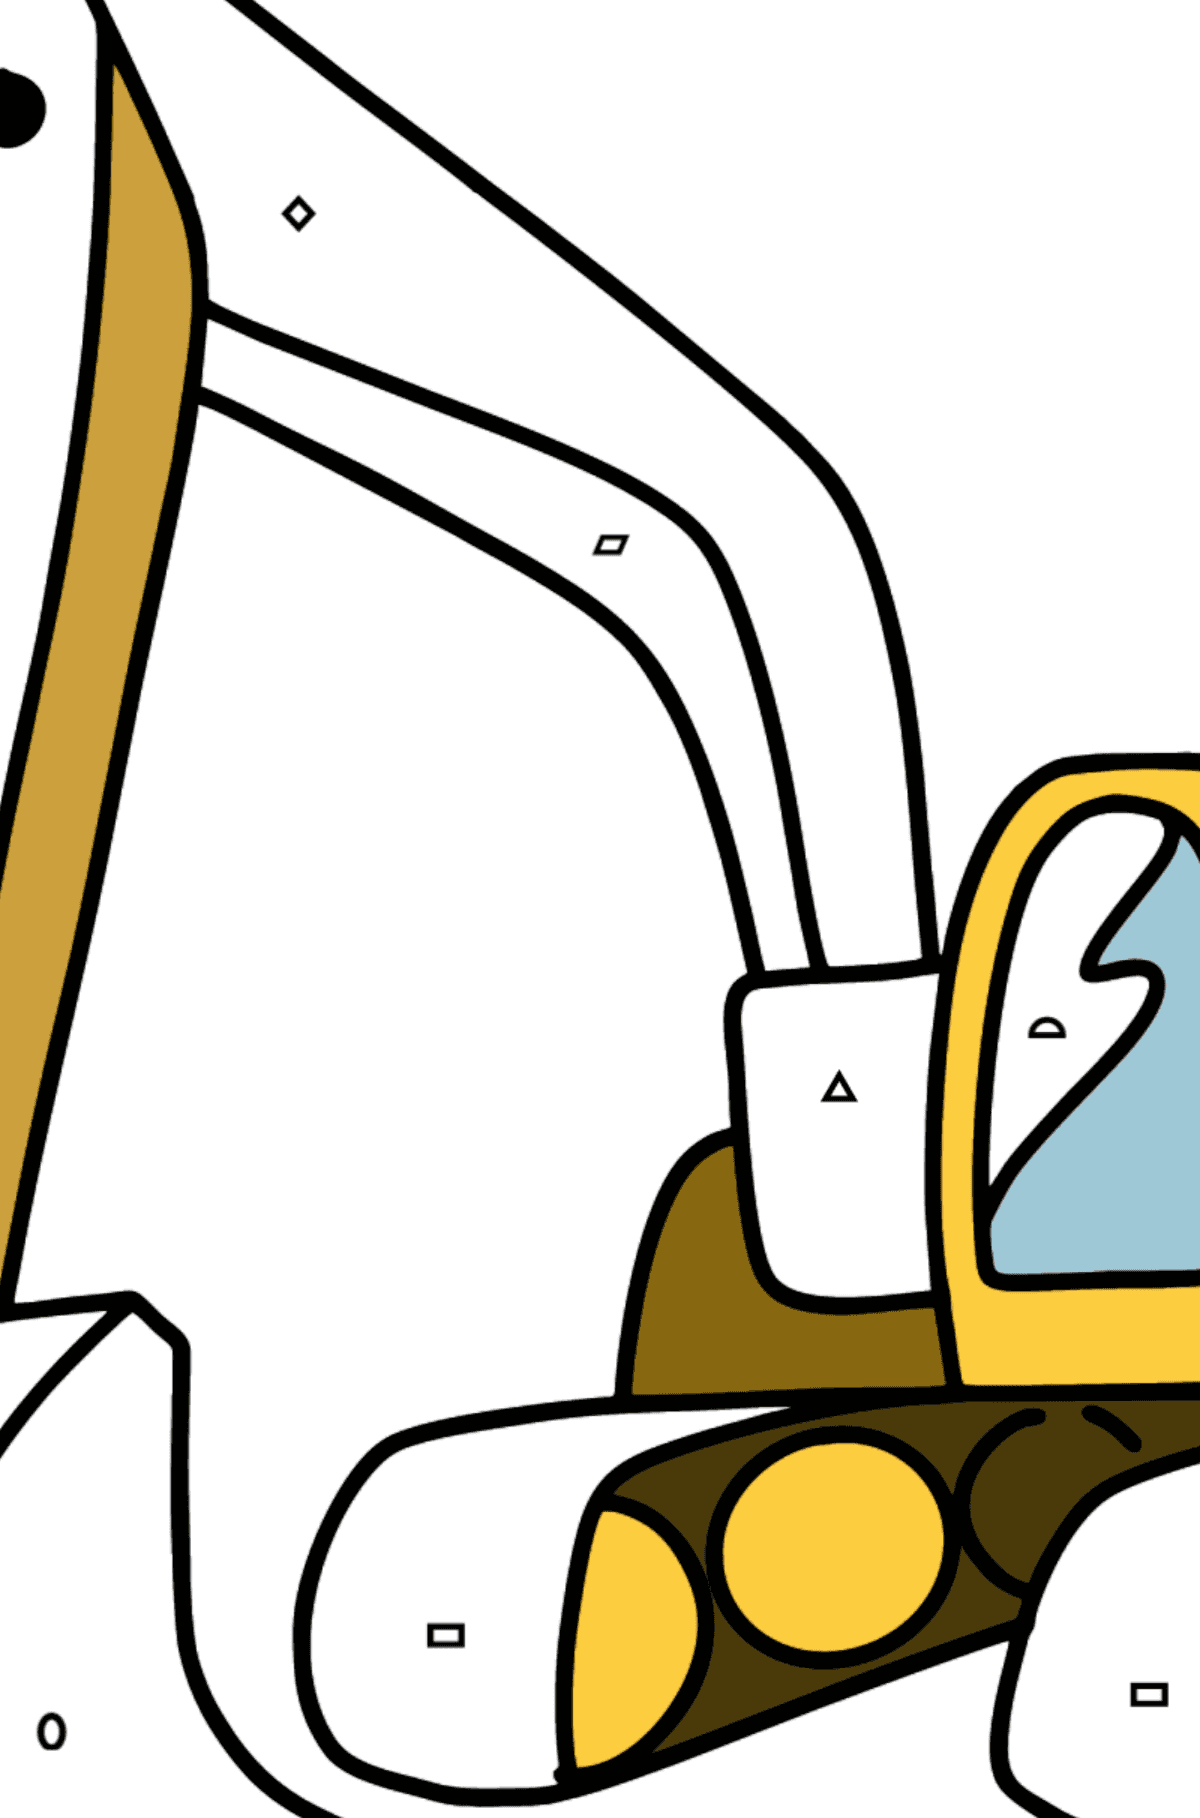 Tractor Excavator coloring page - Coloring by Geometric Shapes for Kids